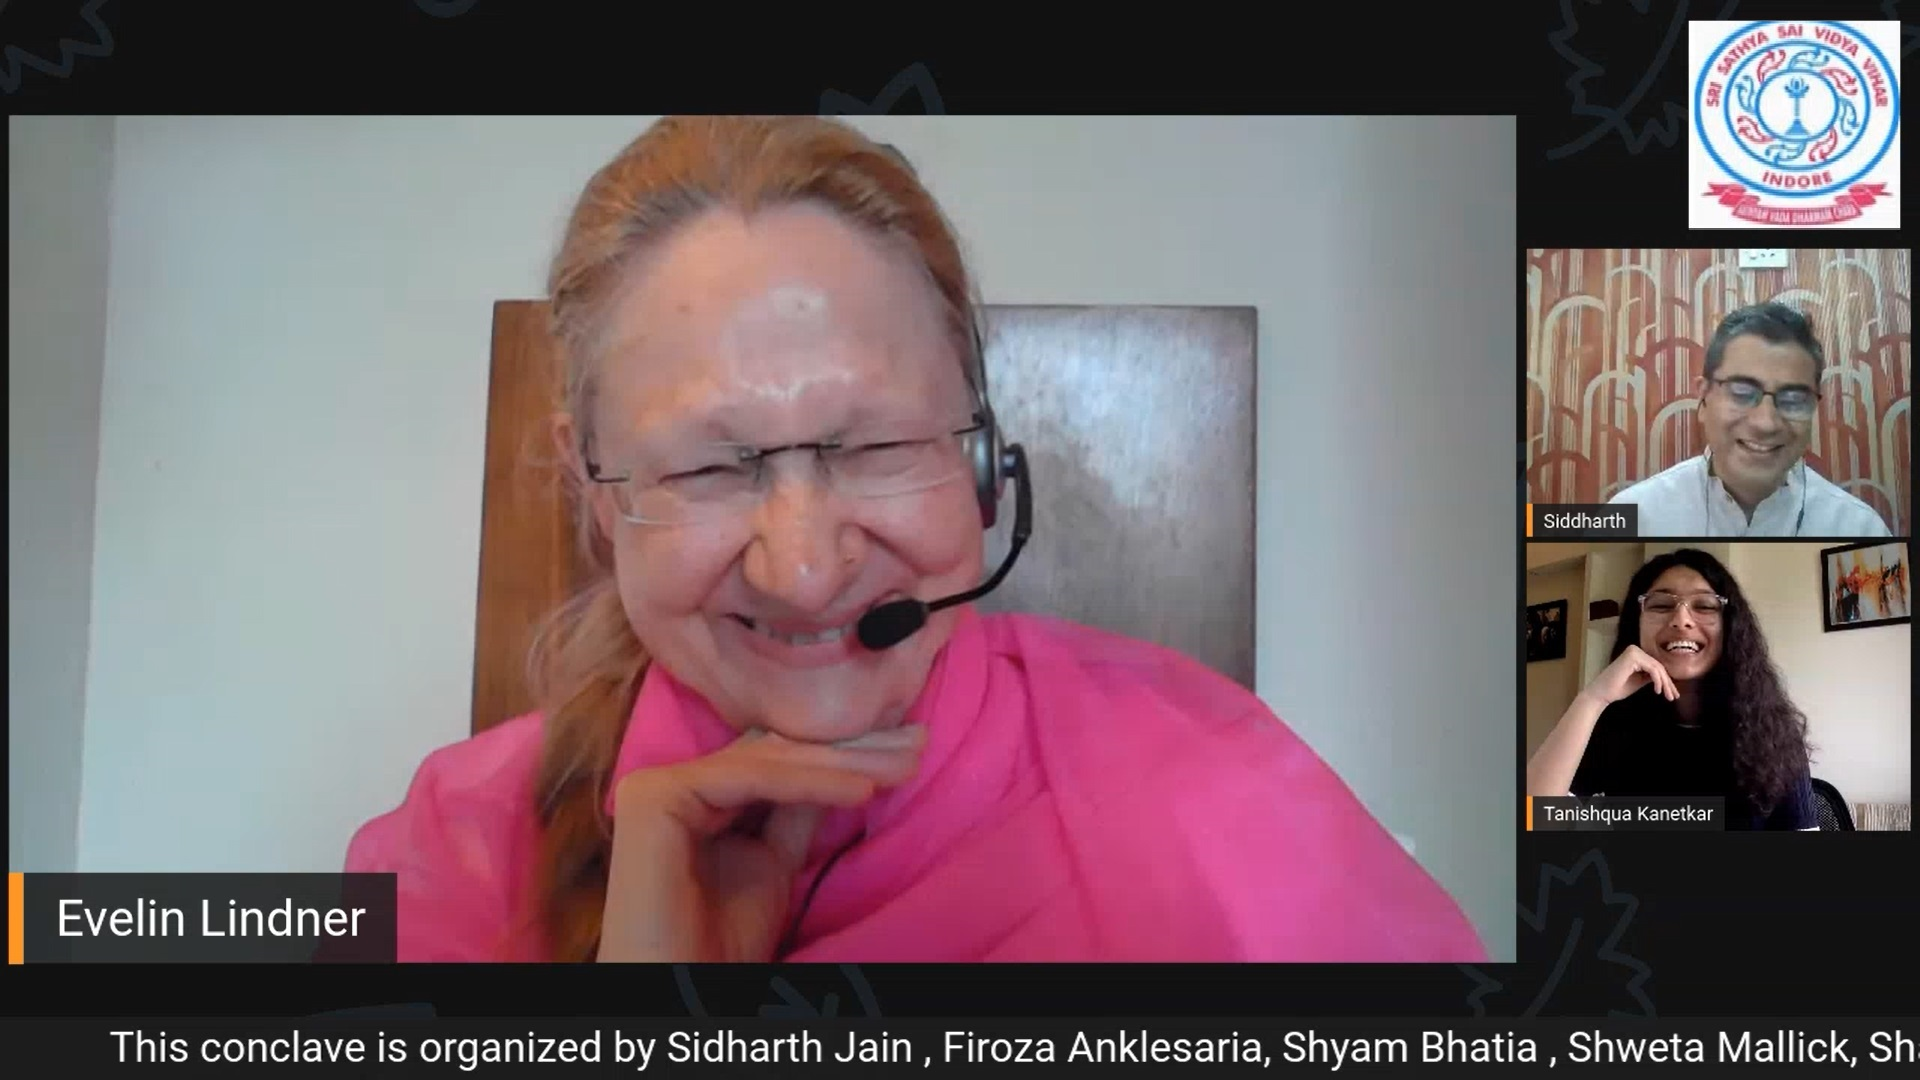 Psychologist Evelin Lindner